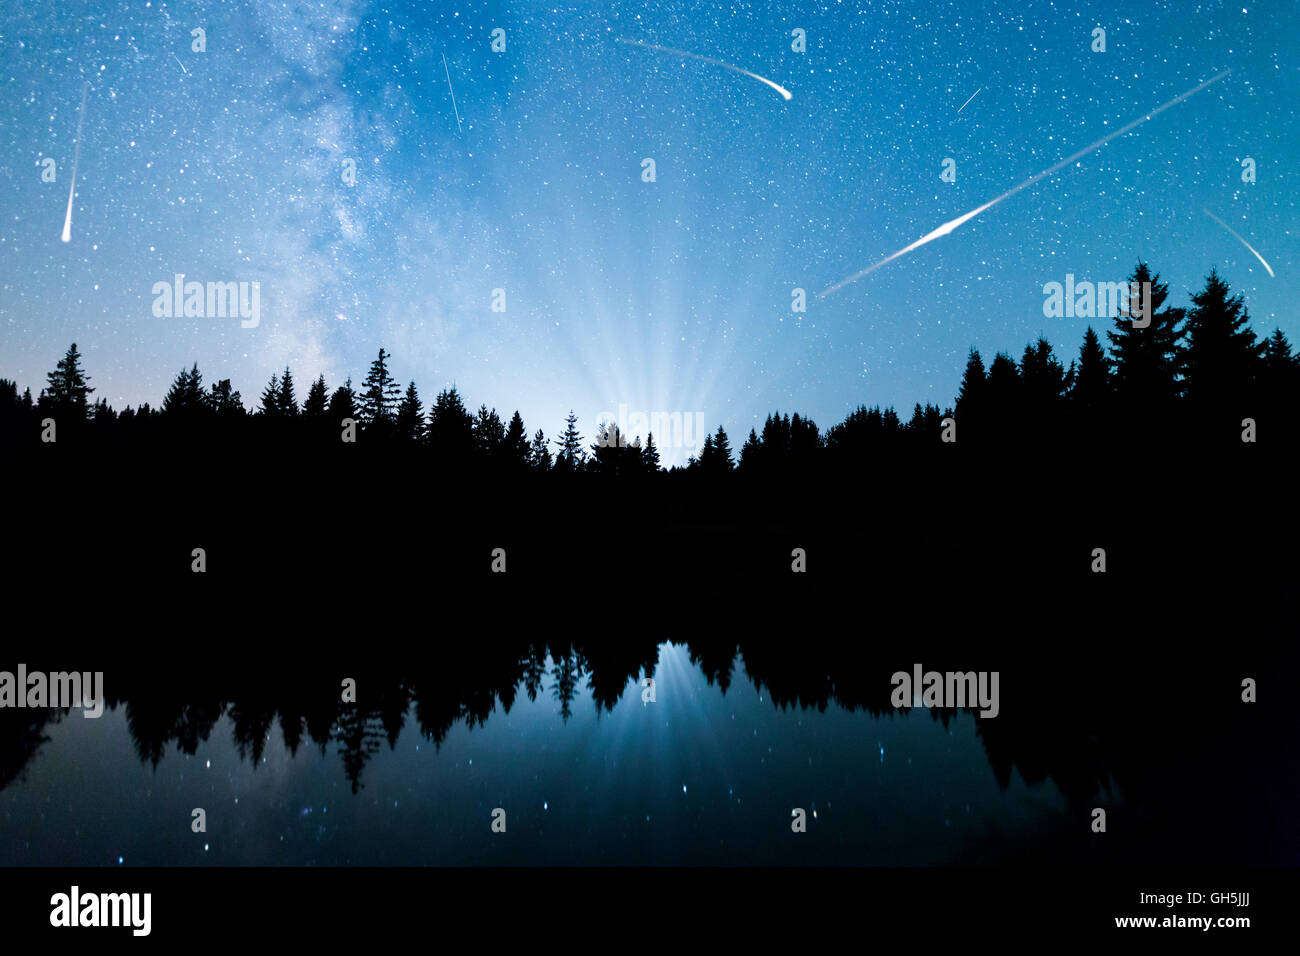 A view of the stars of the Milky Way with a silhouette of a pine trees forest near a lake in the mountain. Falling Stock Photo